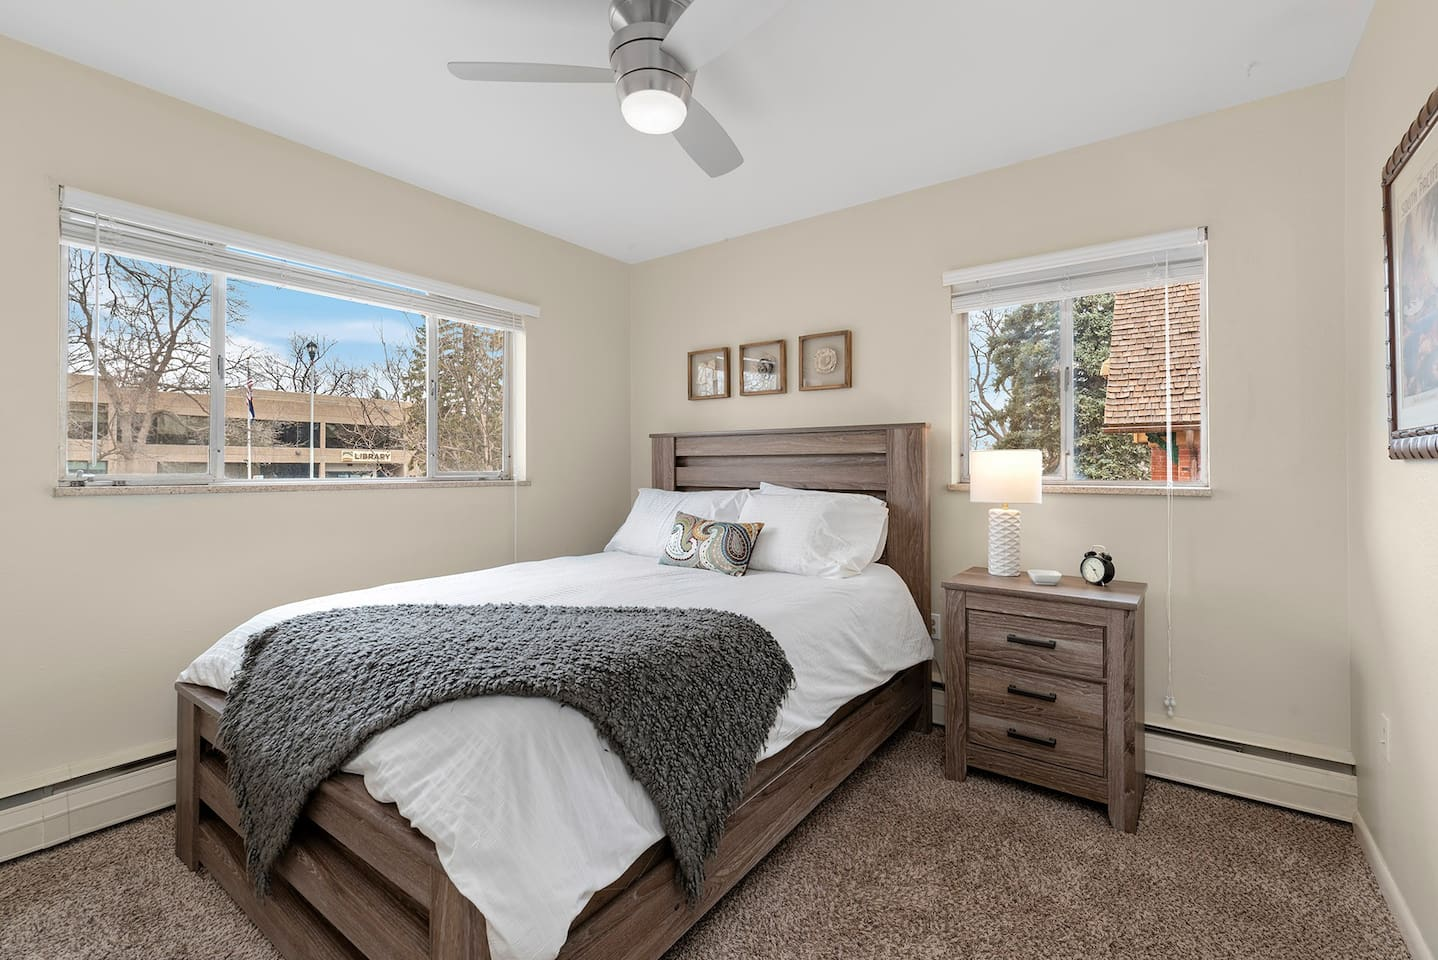 Second level 2bed/2bath condo!  Views of Library Park. Bedrooms have a queen plush mattress,  closet w/hangers, and earplugs for better sleeping.